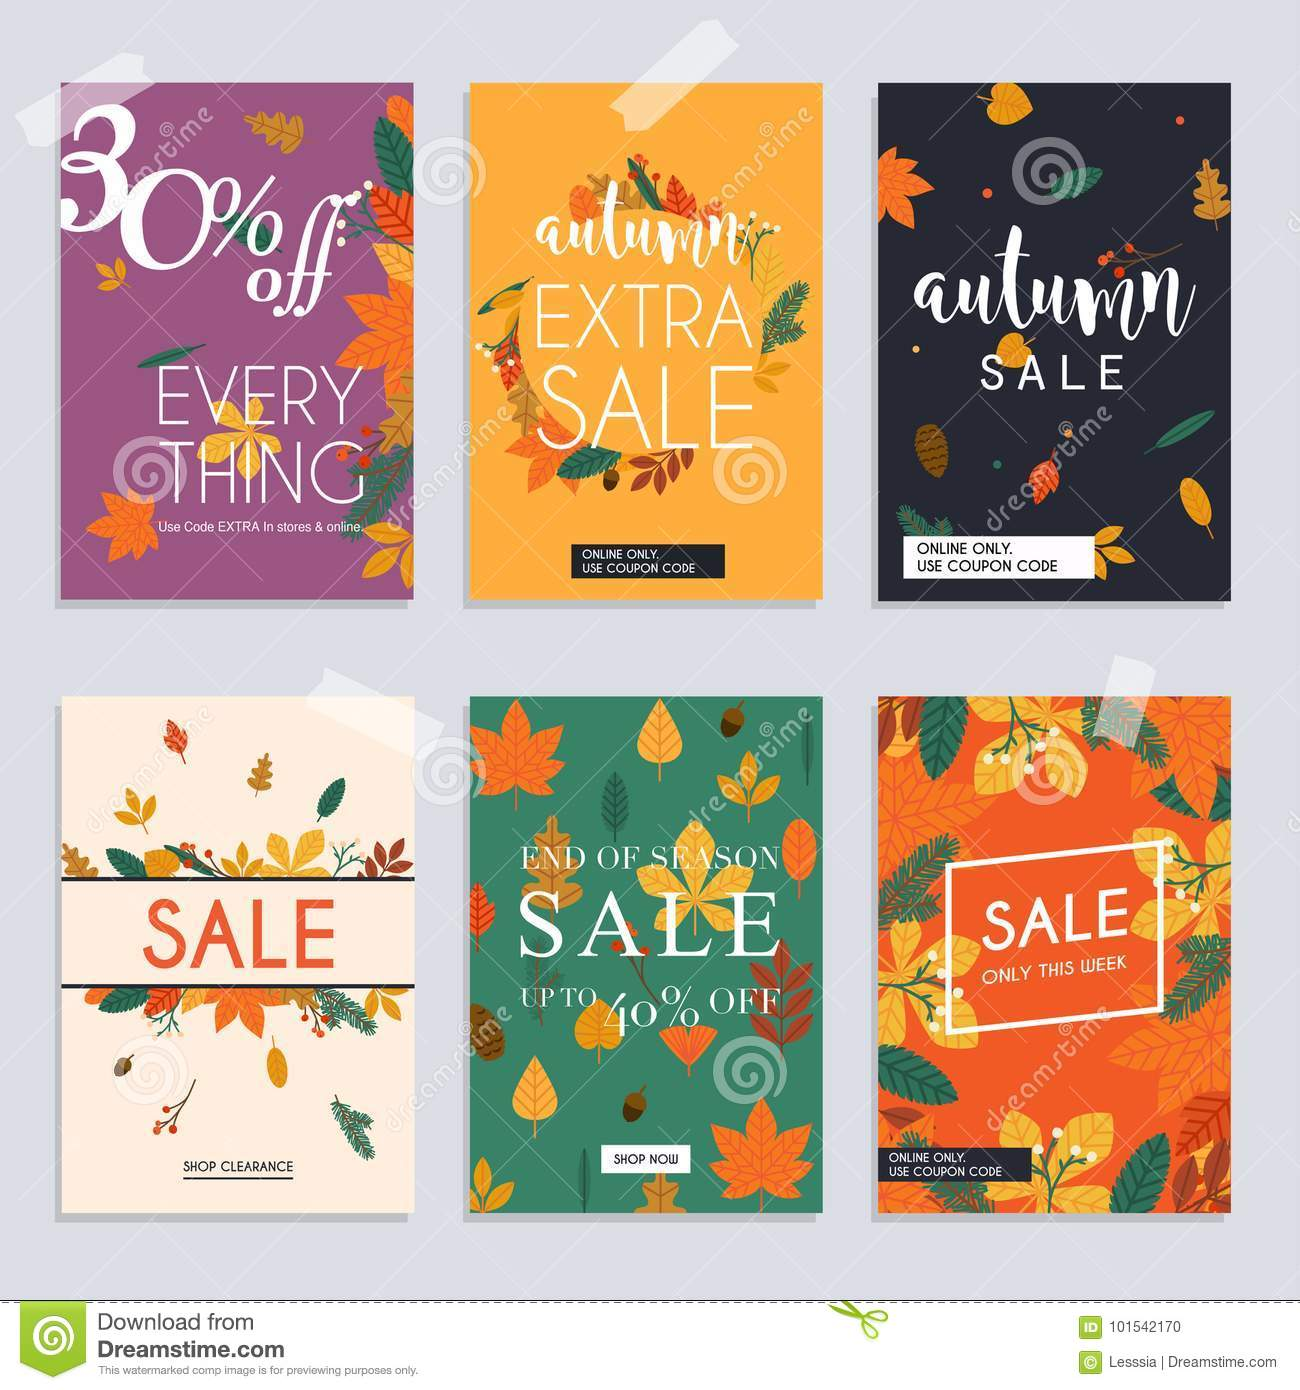 autumn sale website banners web template collection can be used